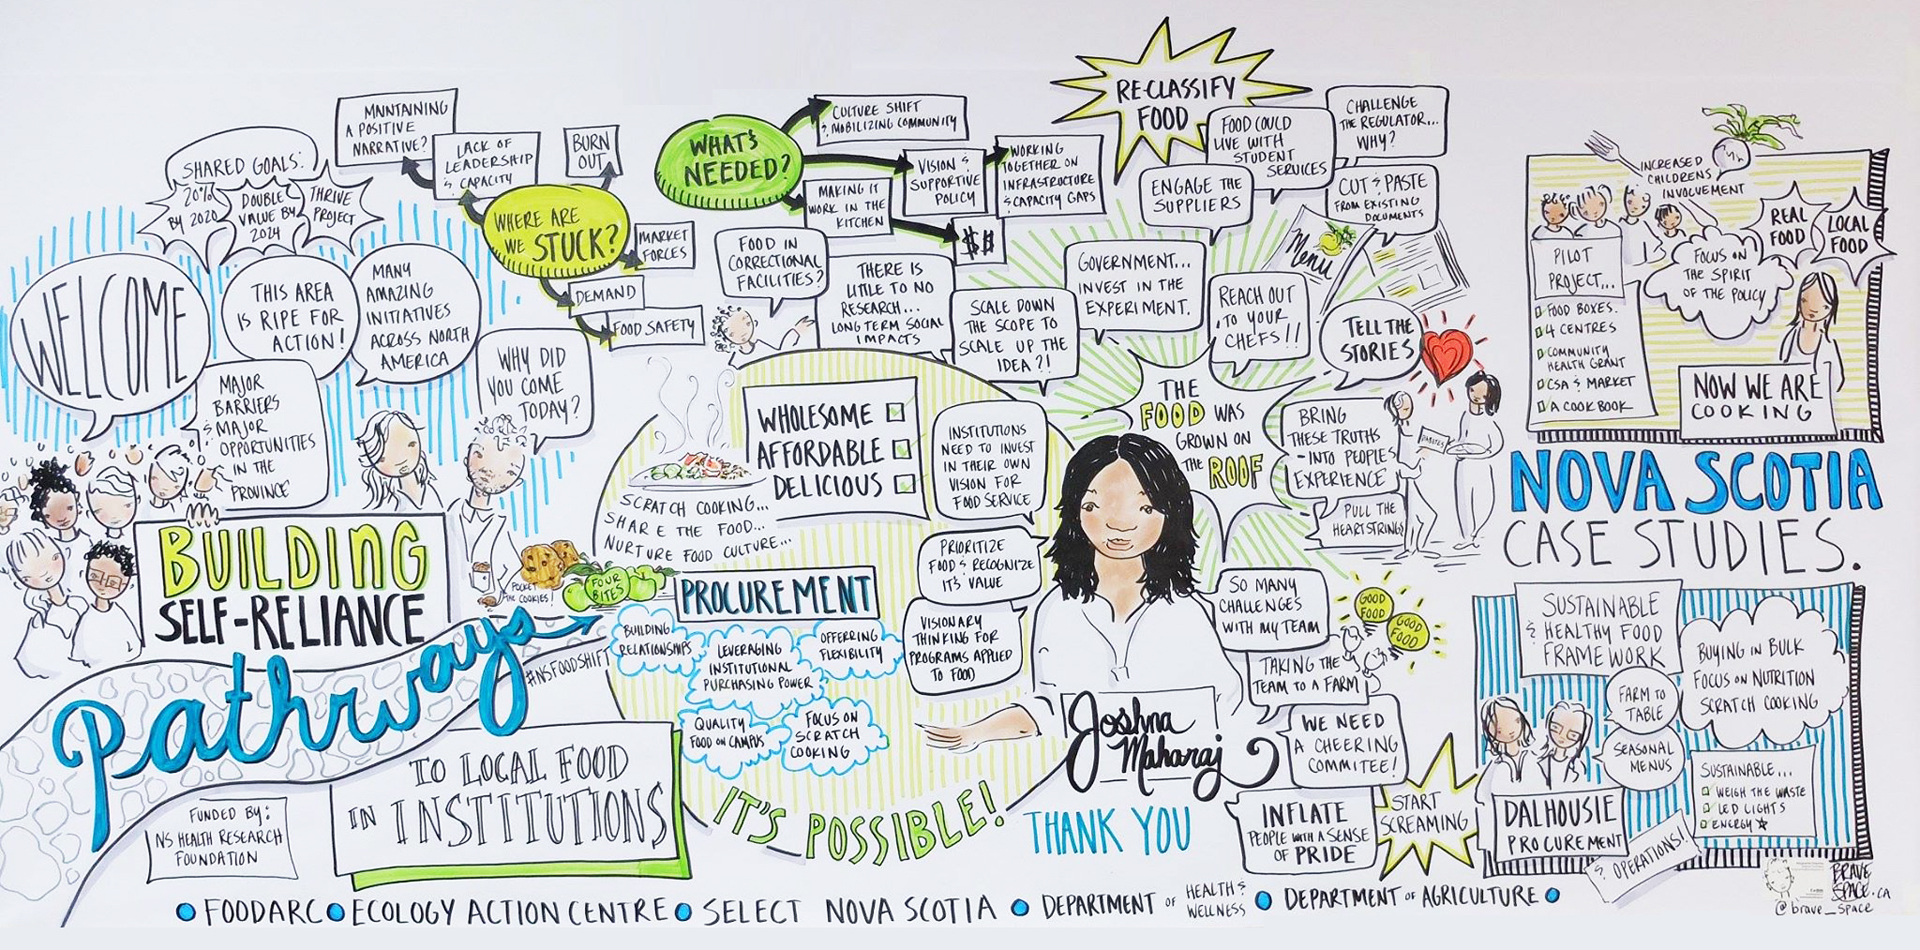 Graphic - Presentation and discussion summary by Brave Space at the Building Self Reliance workshop